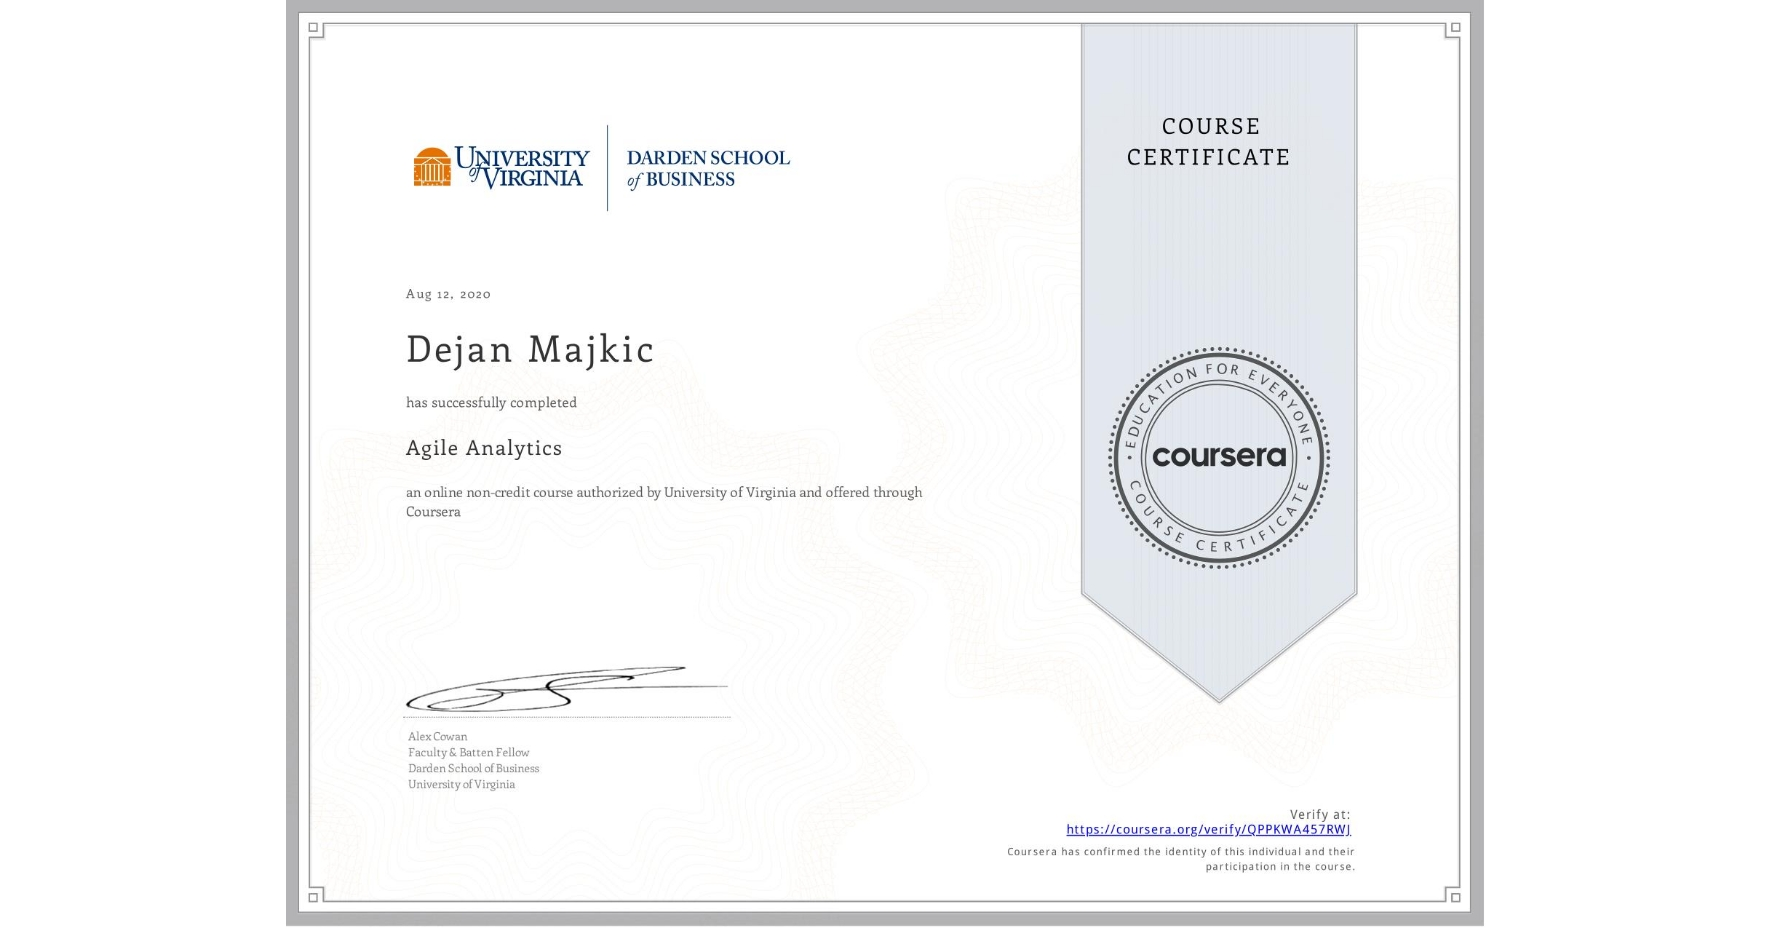 View certificate for Dejan Majkic, Agile Analytics, an online non-credit course authorized by University of Virginia and offered through Coursera